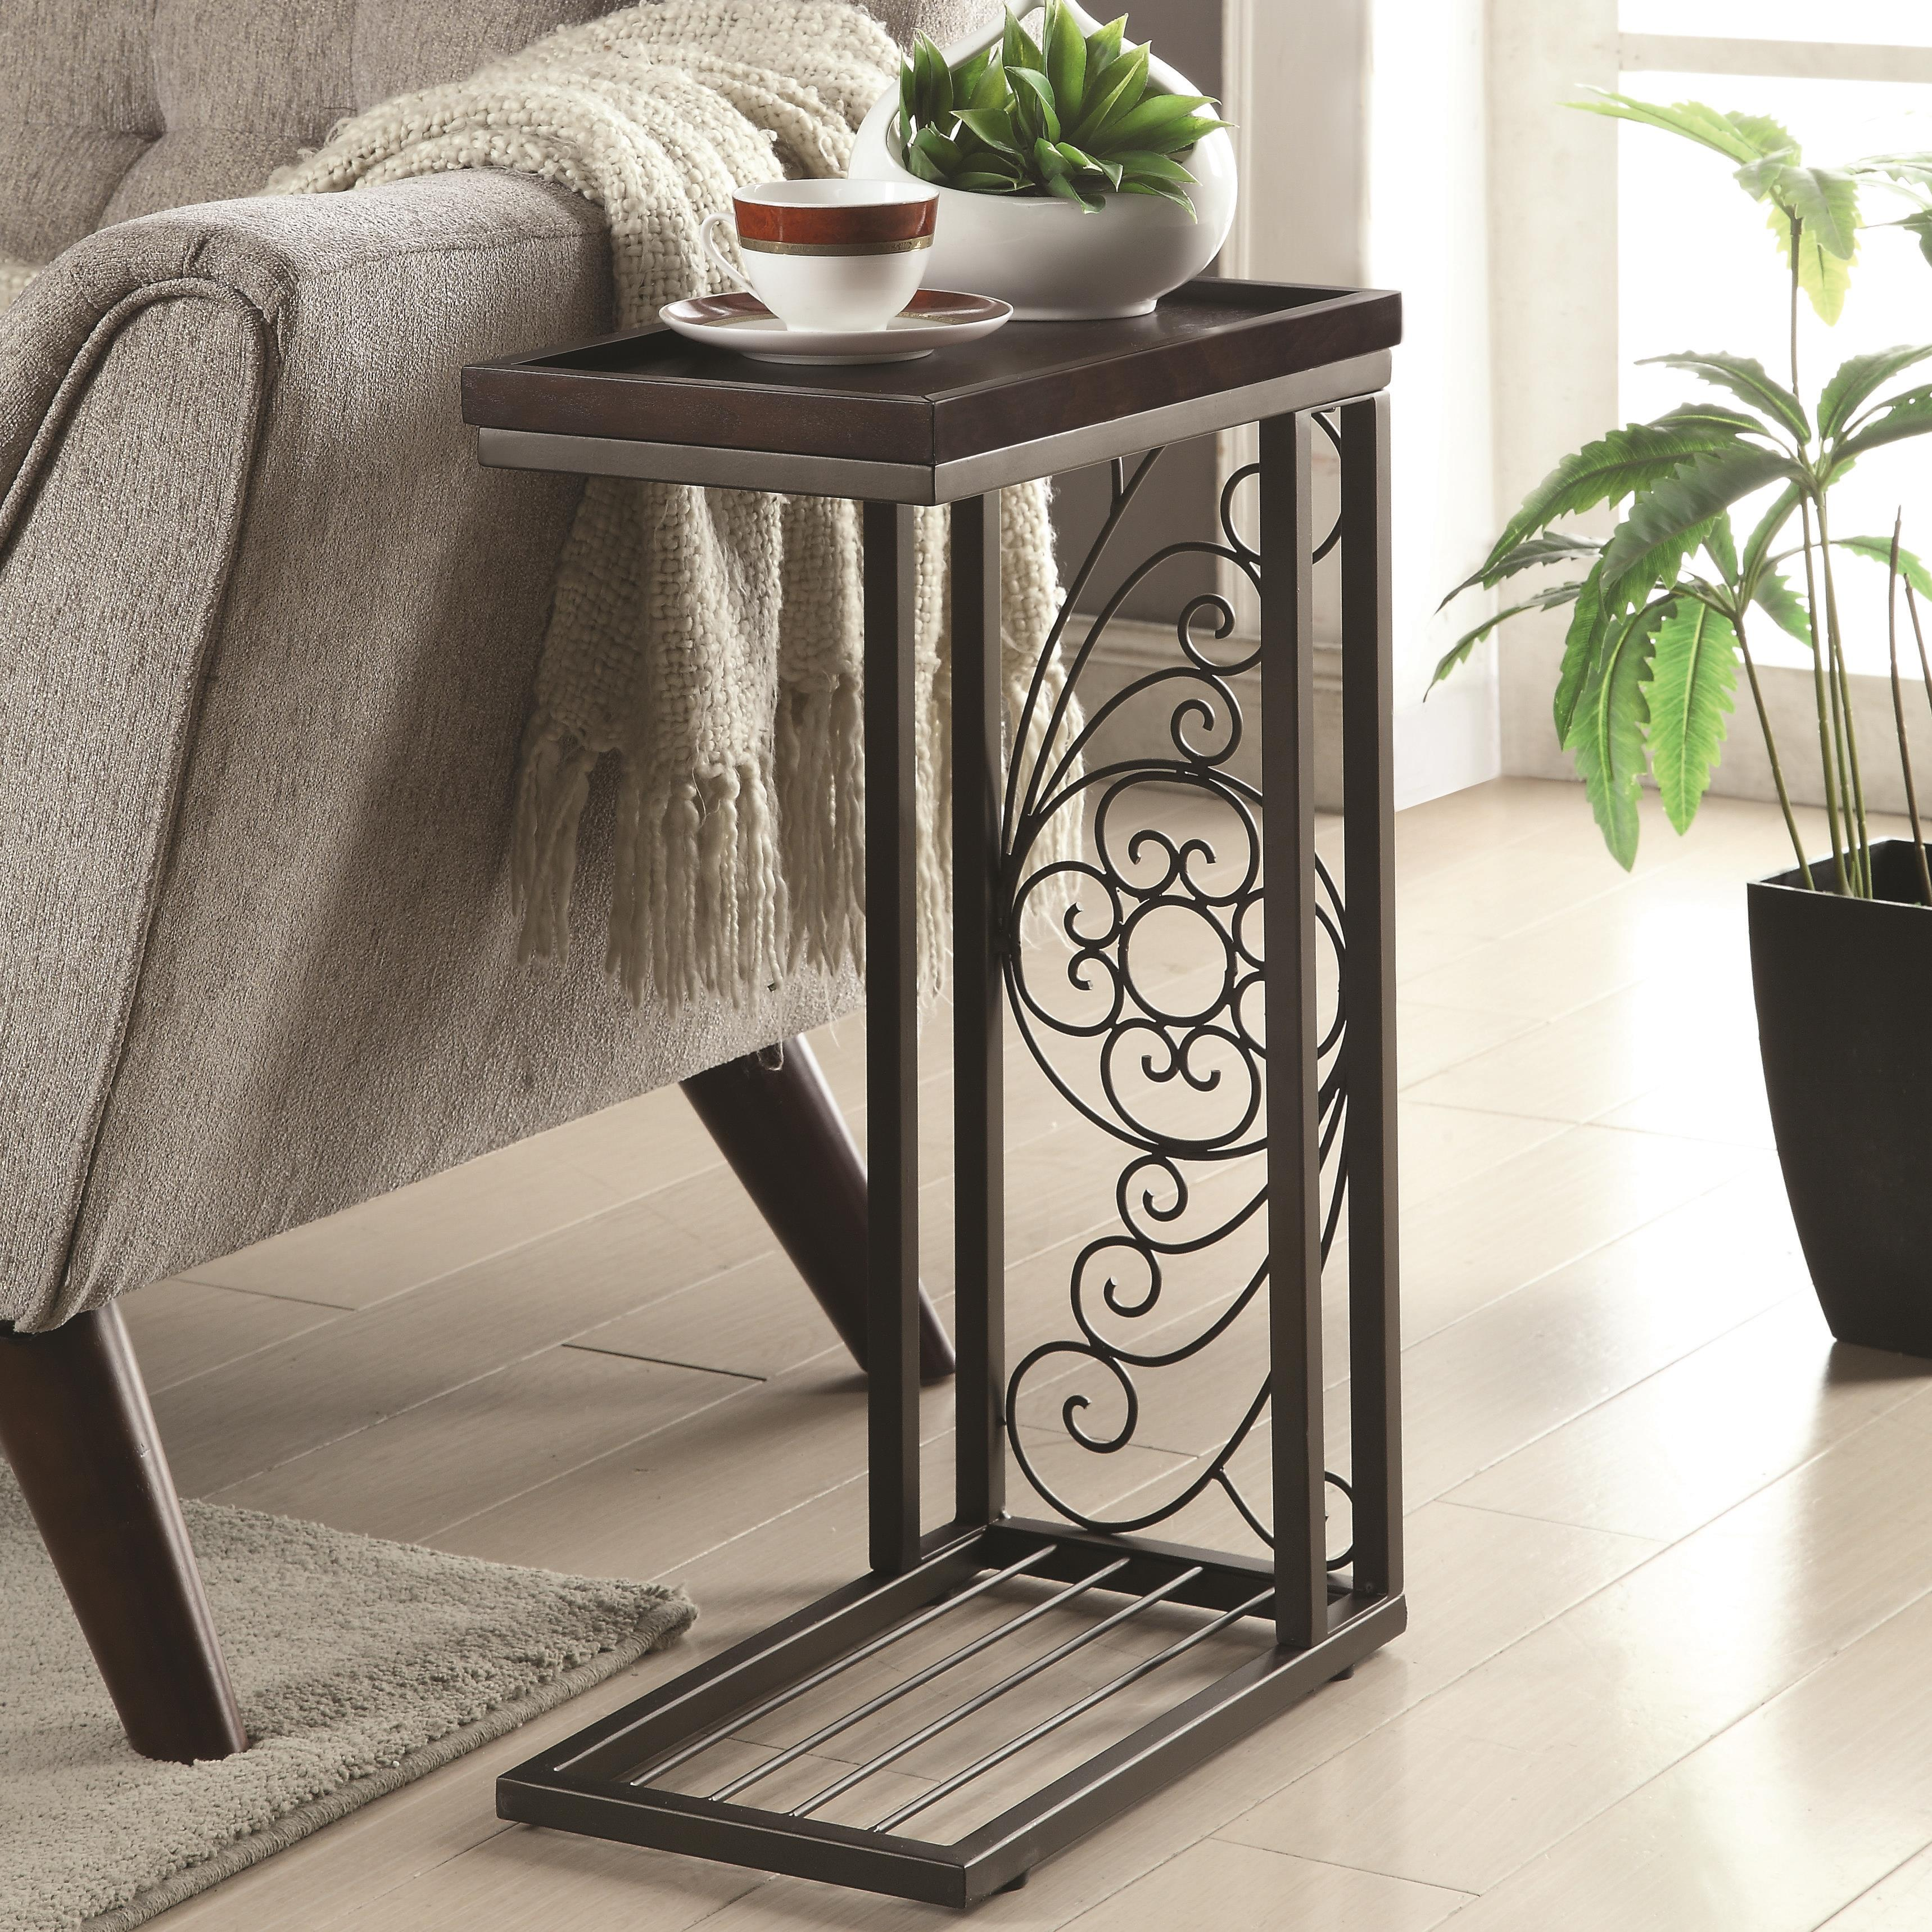 Coaster Accent Tables Snack Table - Item Number: 901948